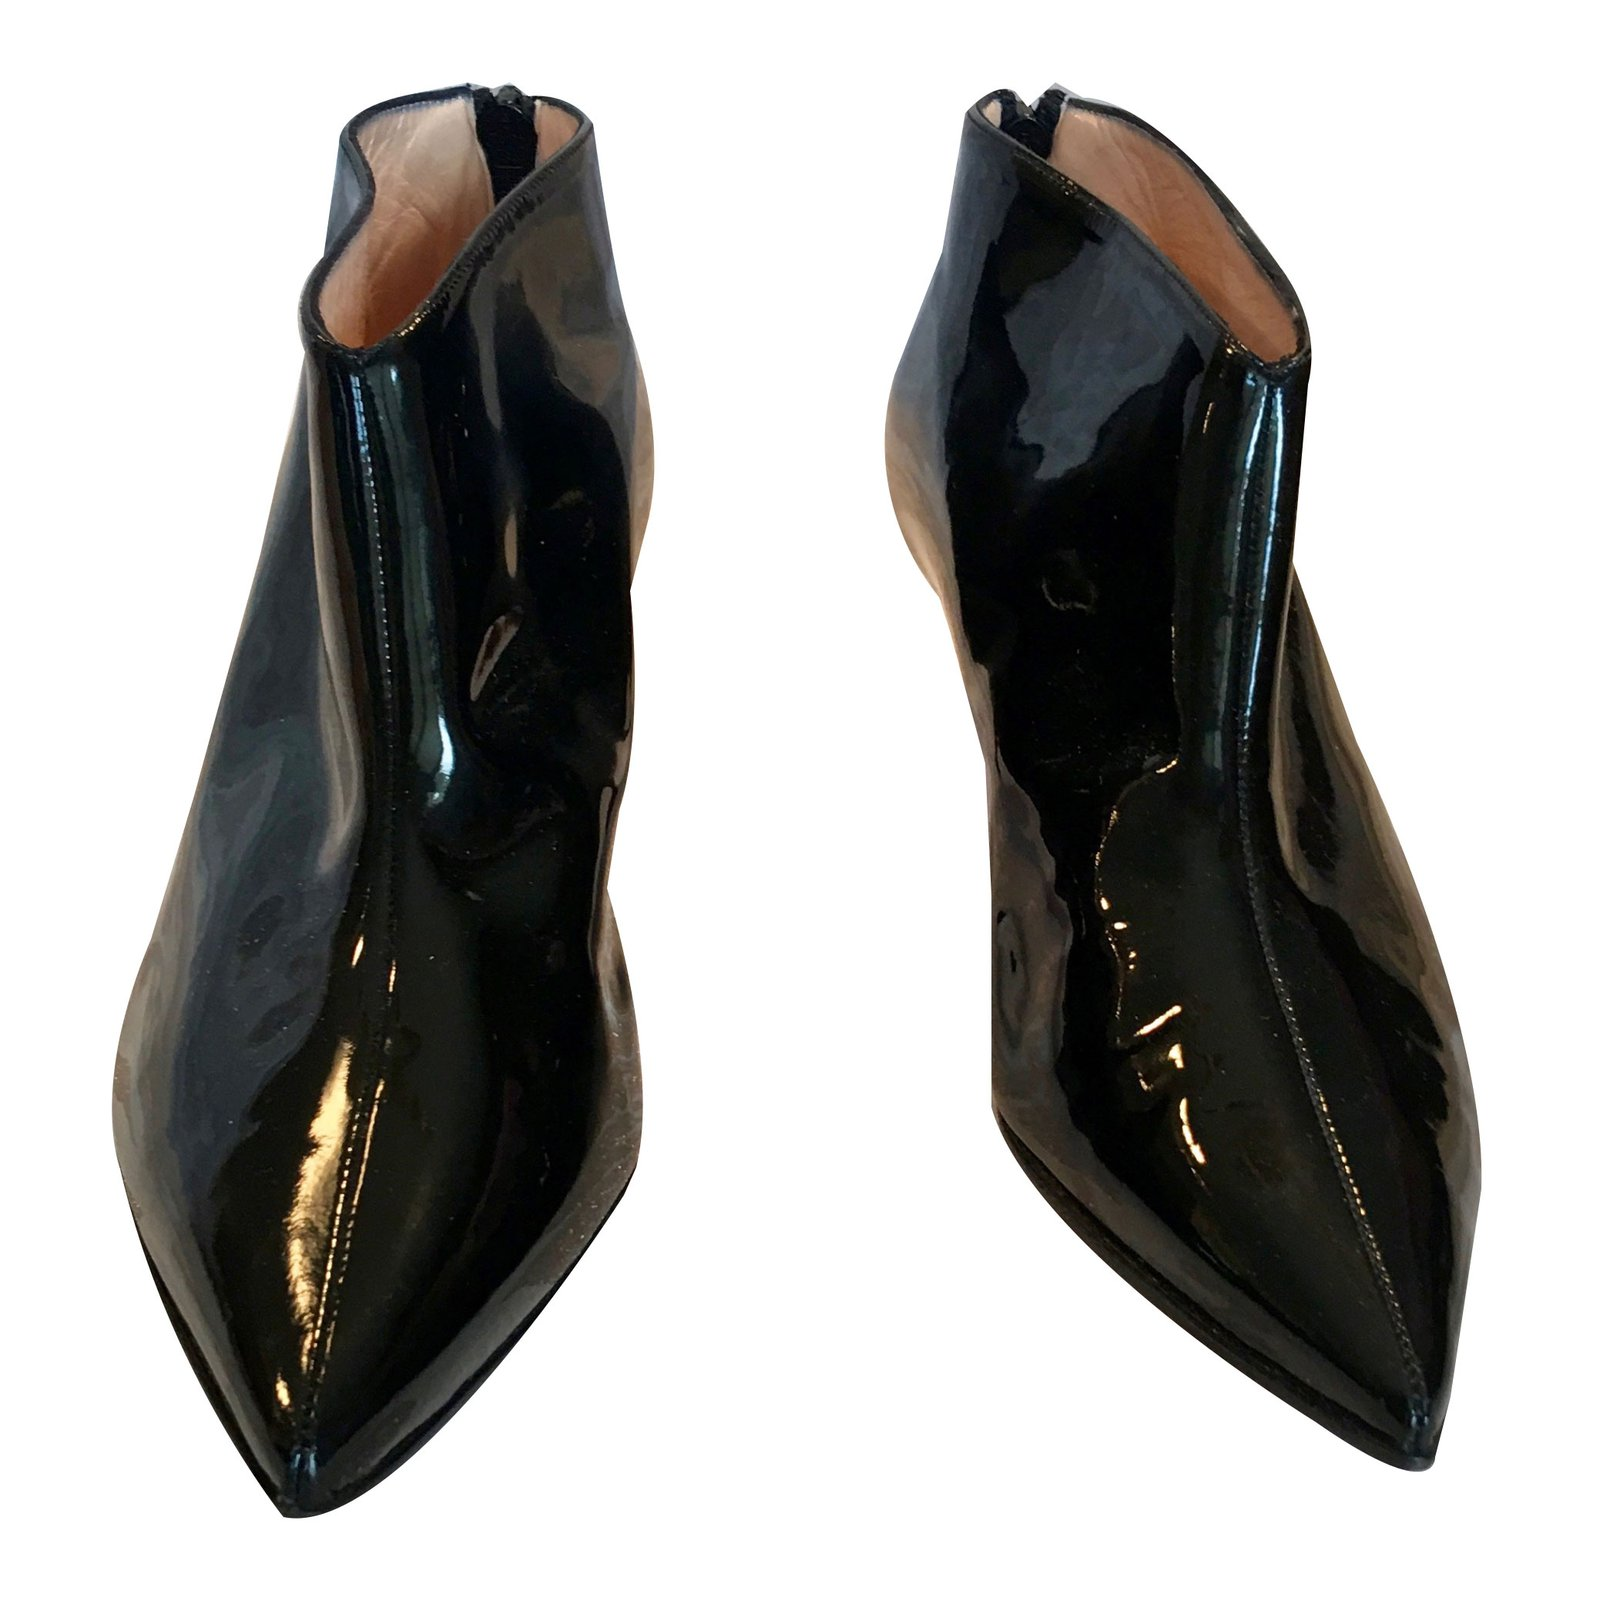 f58e9c651204 ... norway christian louboutin ankle boots ankle boots patent leather black  ref.64006 e37c5 8e792